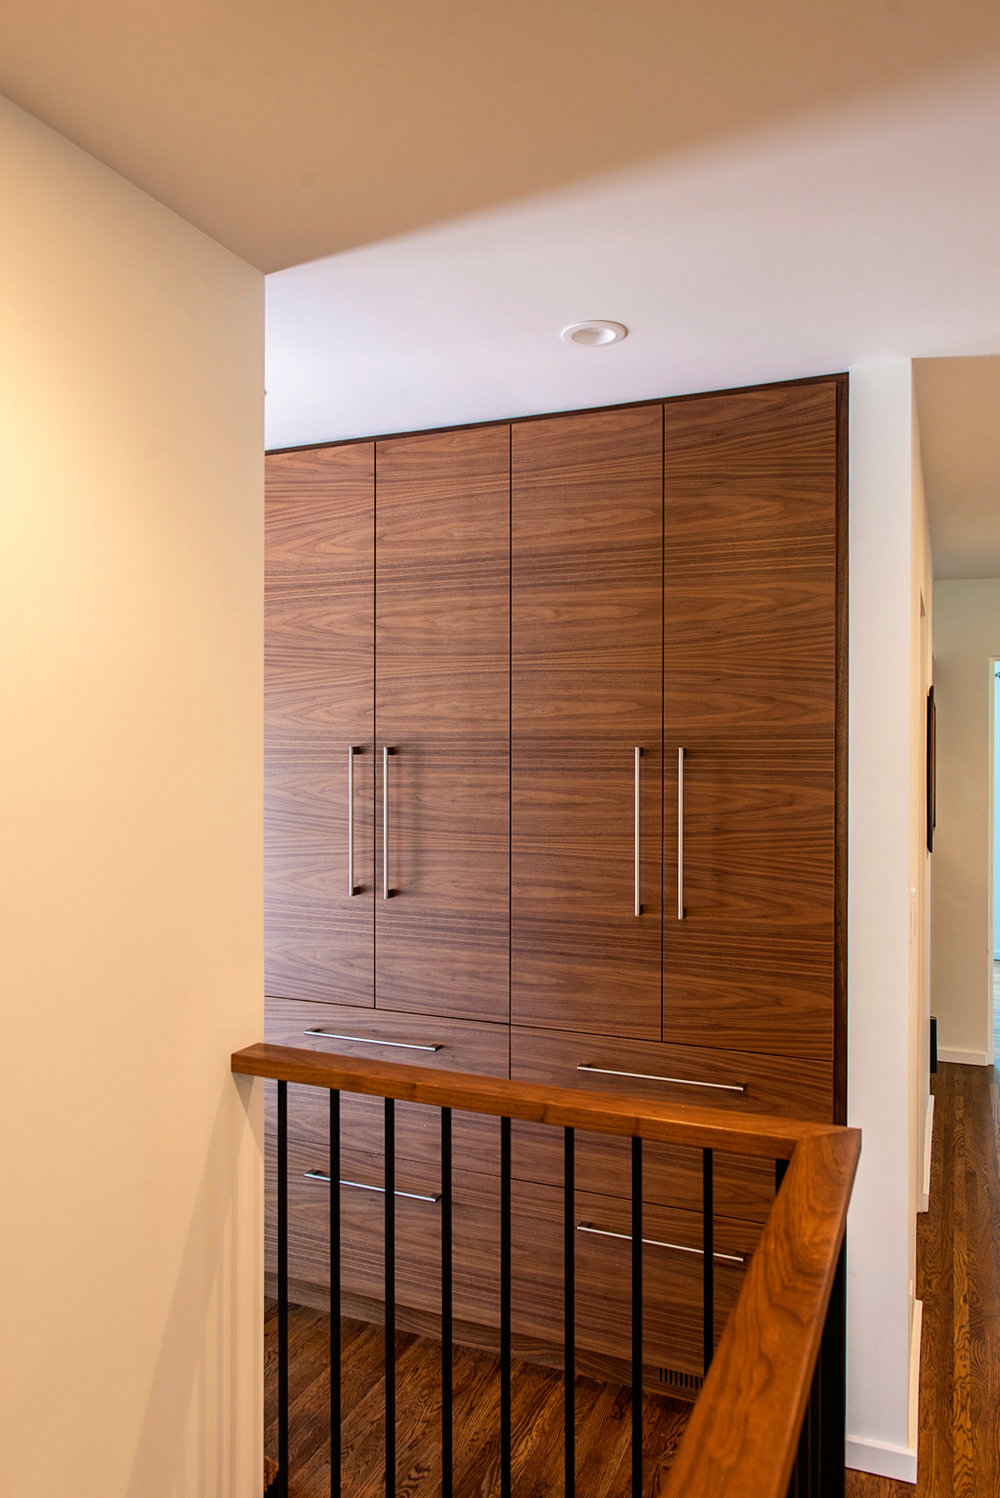 Able-and-Baker-Adams-Hallway-Cabinet-DSC_1519-web.jpg